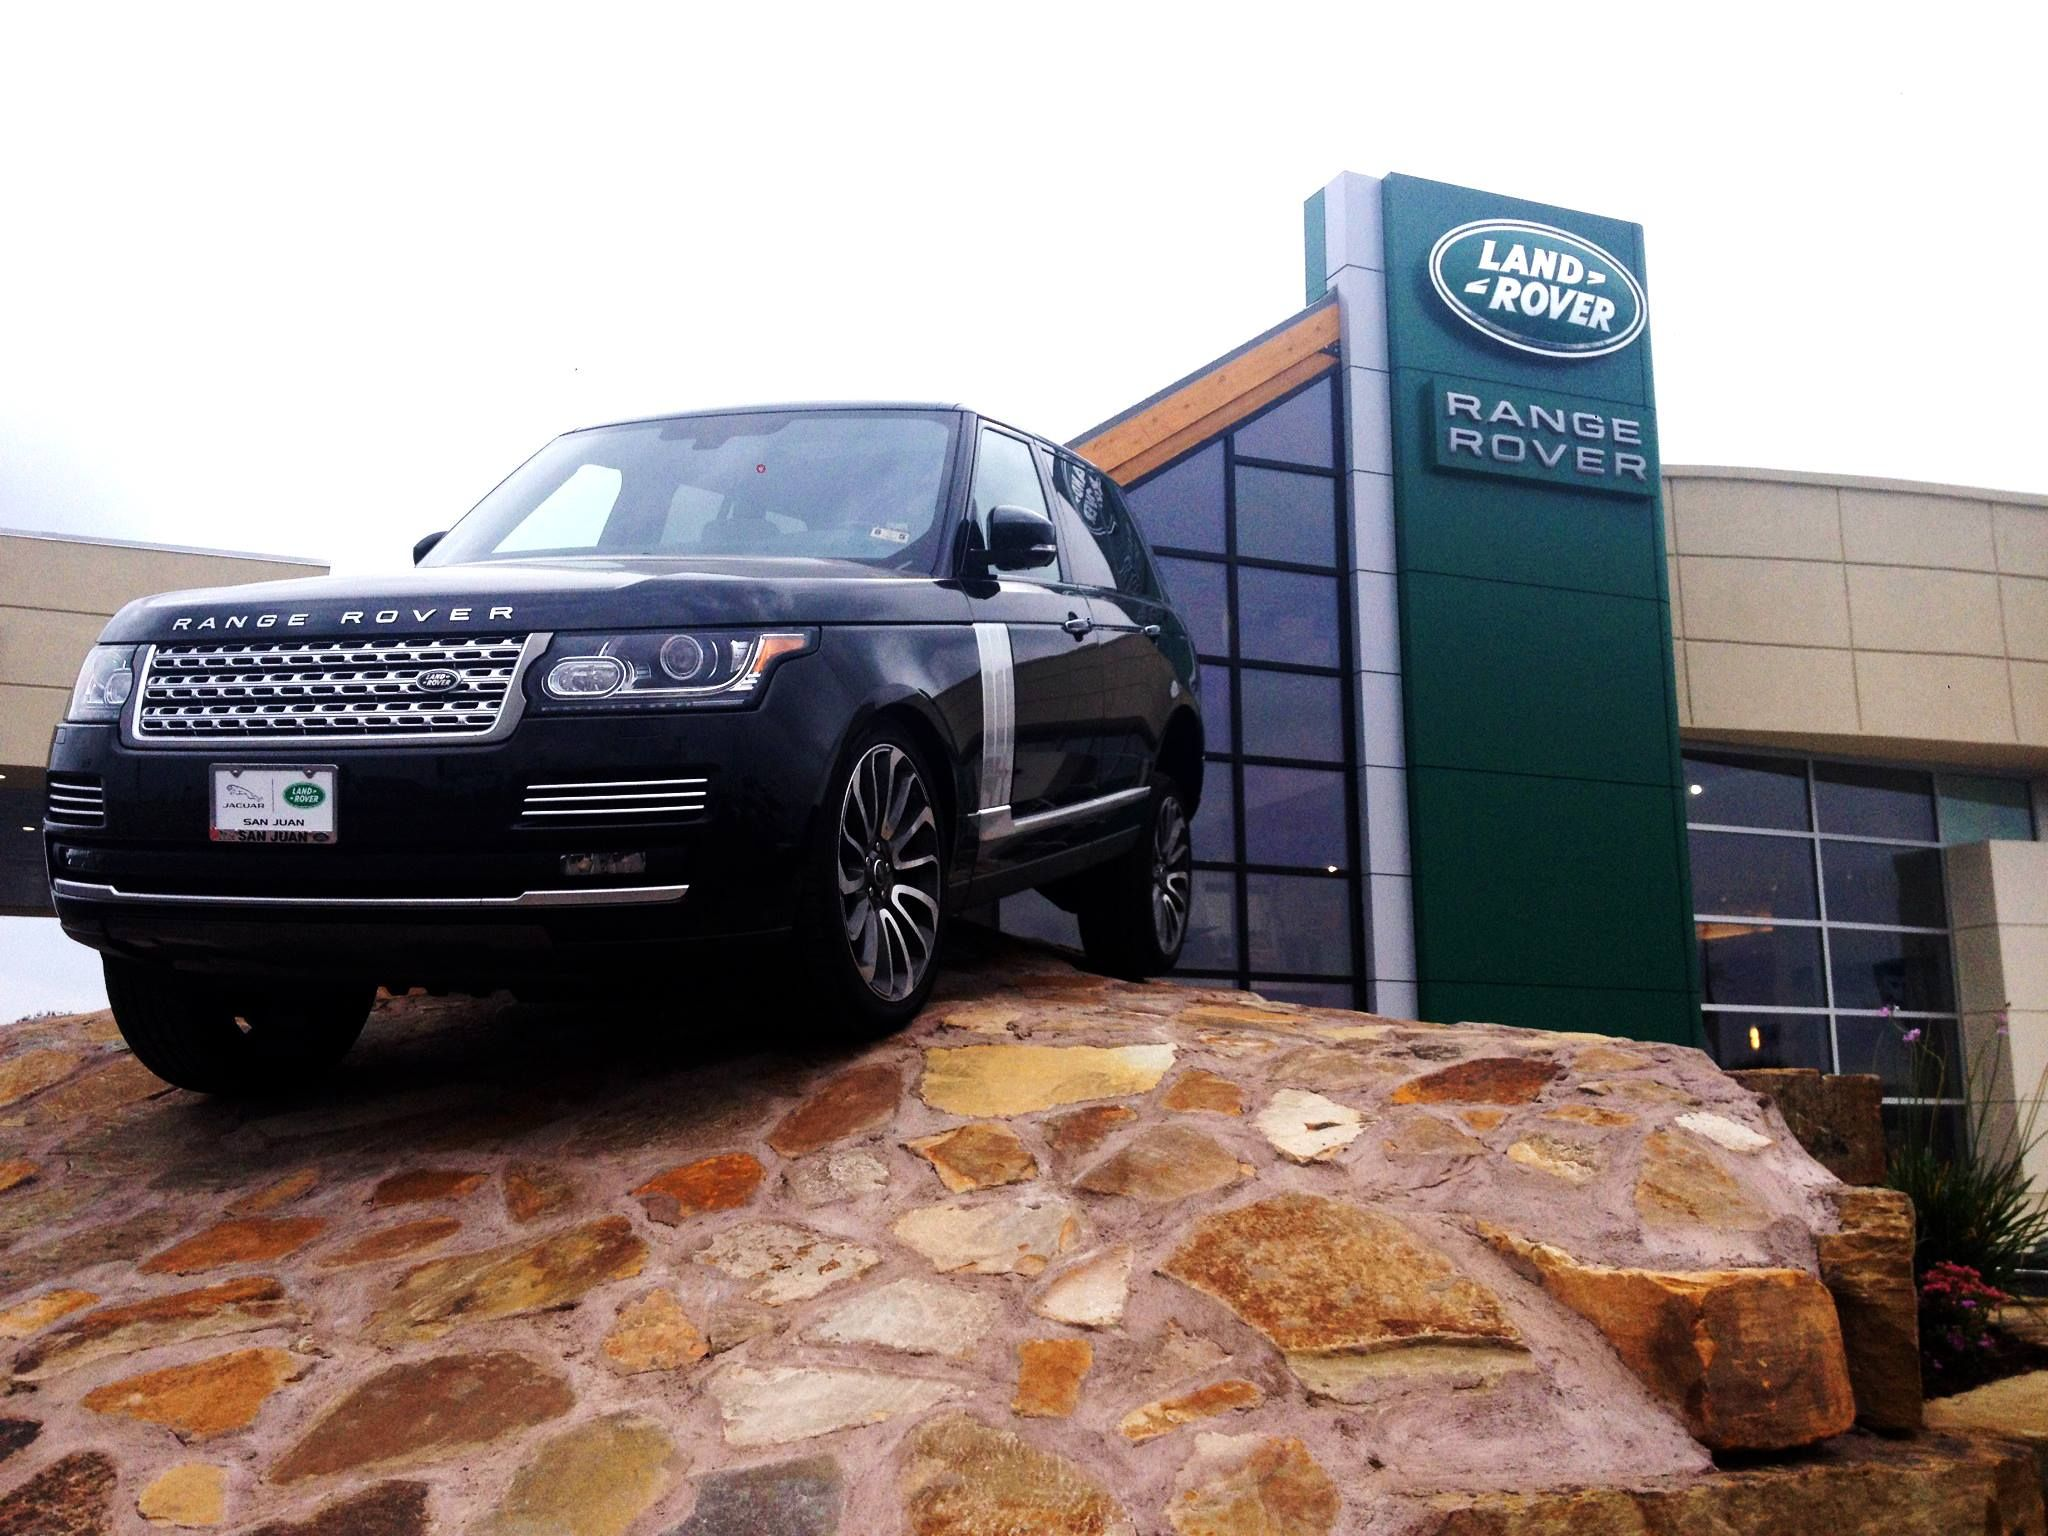 Ask about ordering a New Range Rover at landrover sanjuan texas